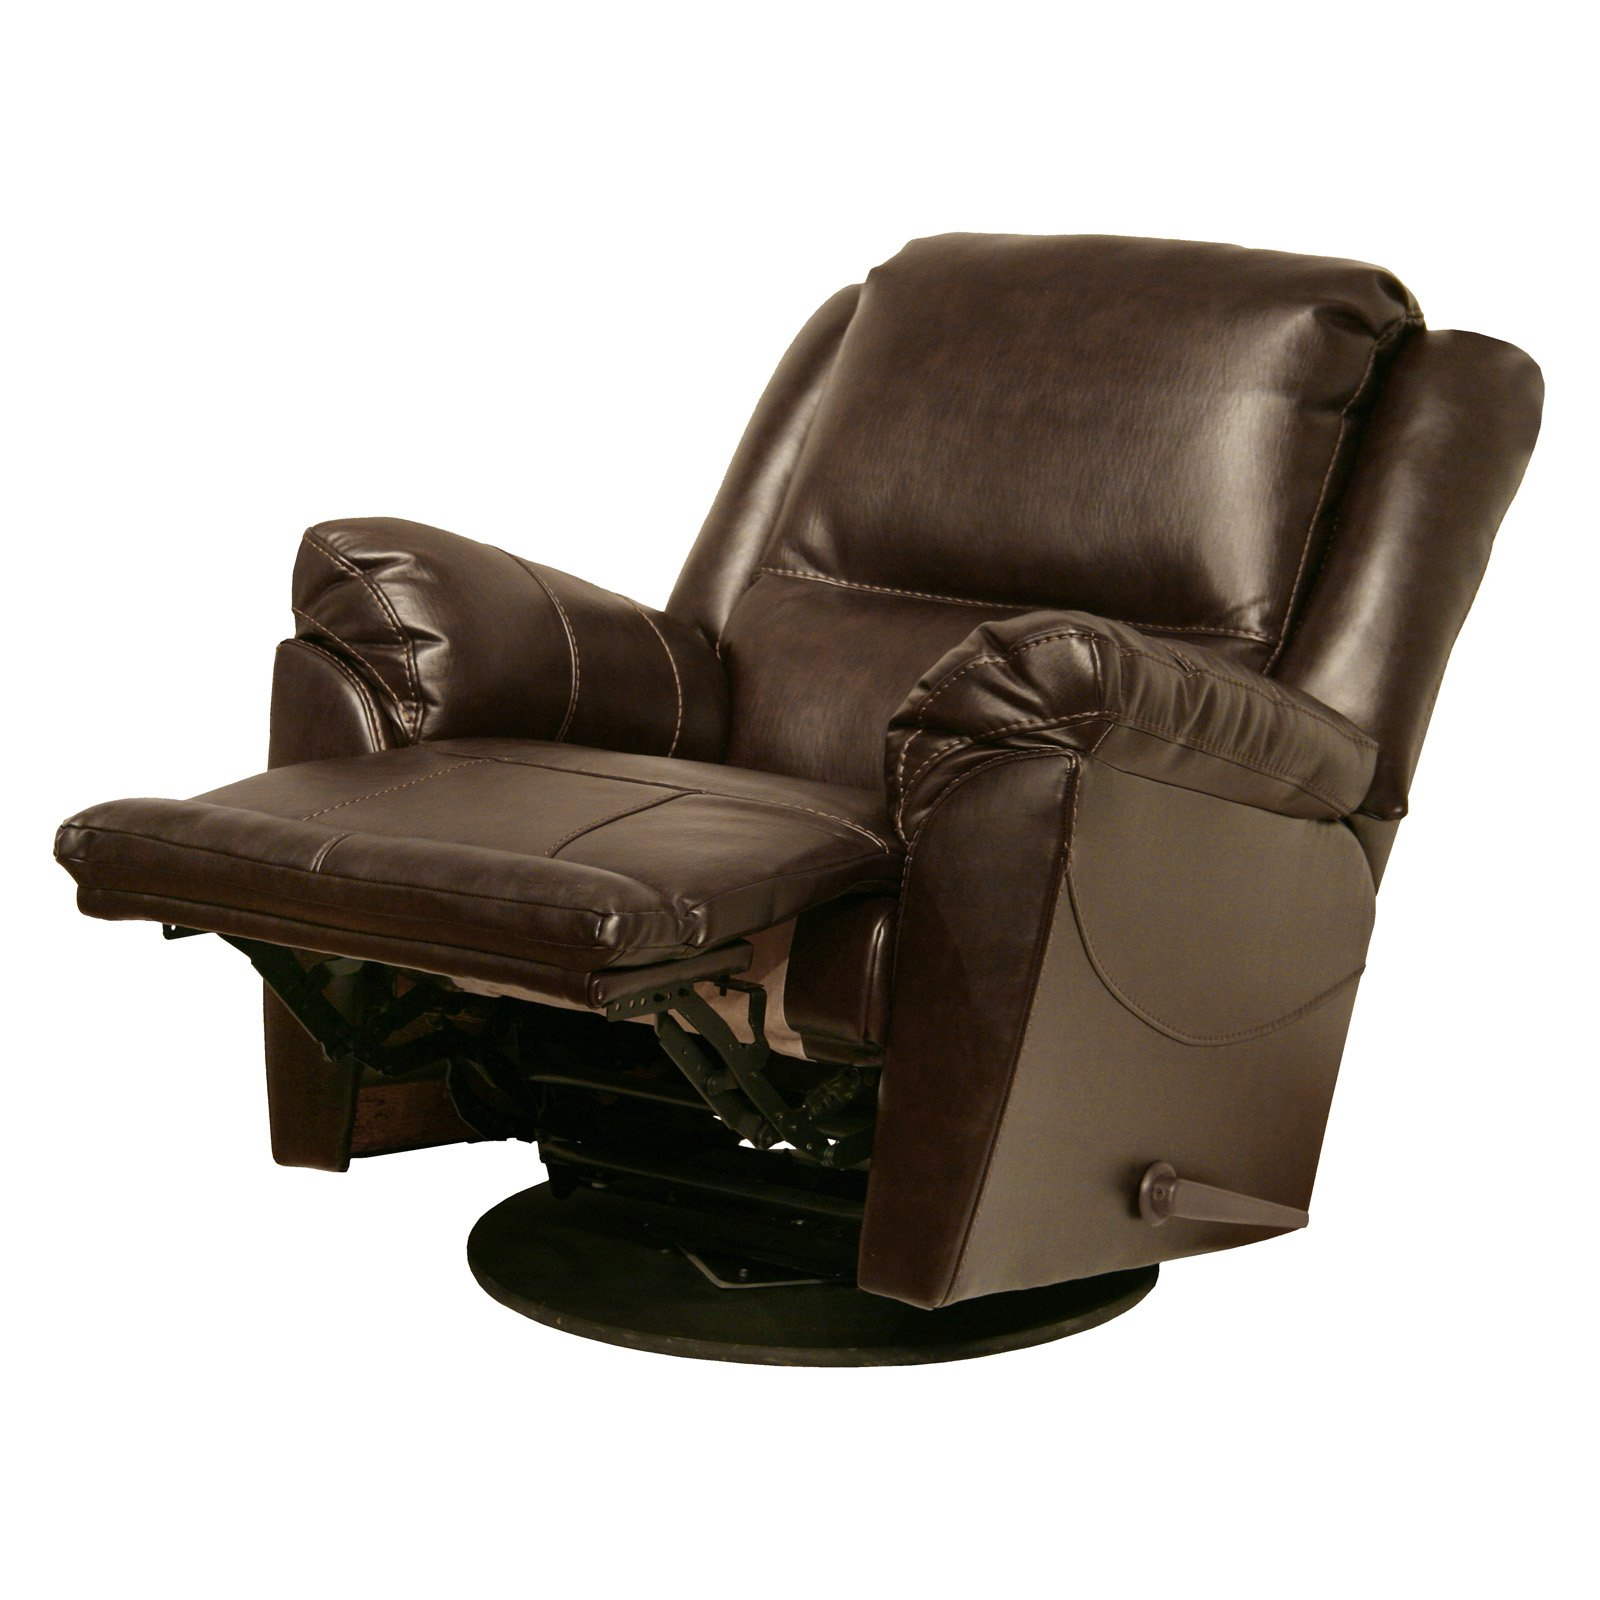 Swivel Tobacco Leather Chairs For Fashionable Catnapper Maverick Chaise Leather Swivel Glider Recliner – Walmart (View 20 of 20)